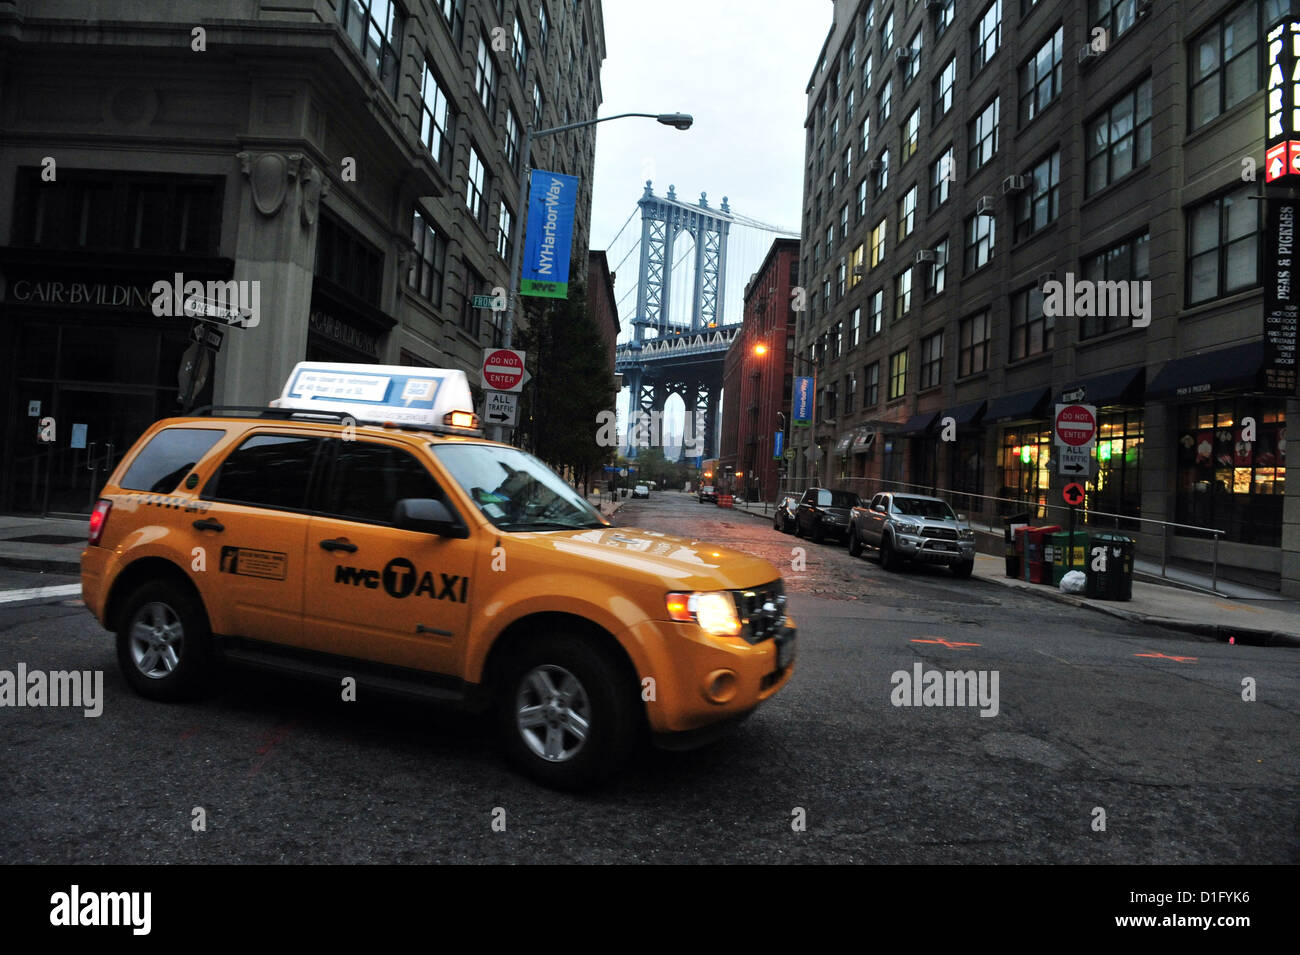 The new hybrid Yellow taxicab in Manhattan New York. - Stock Image